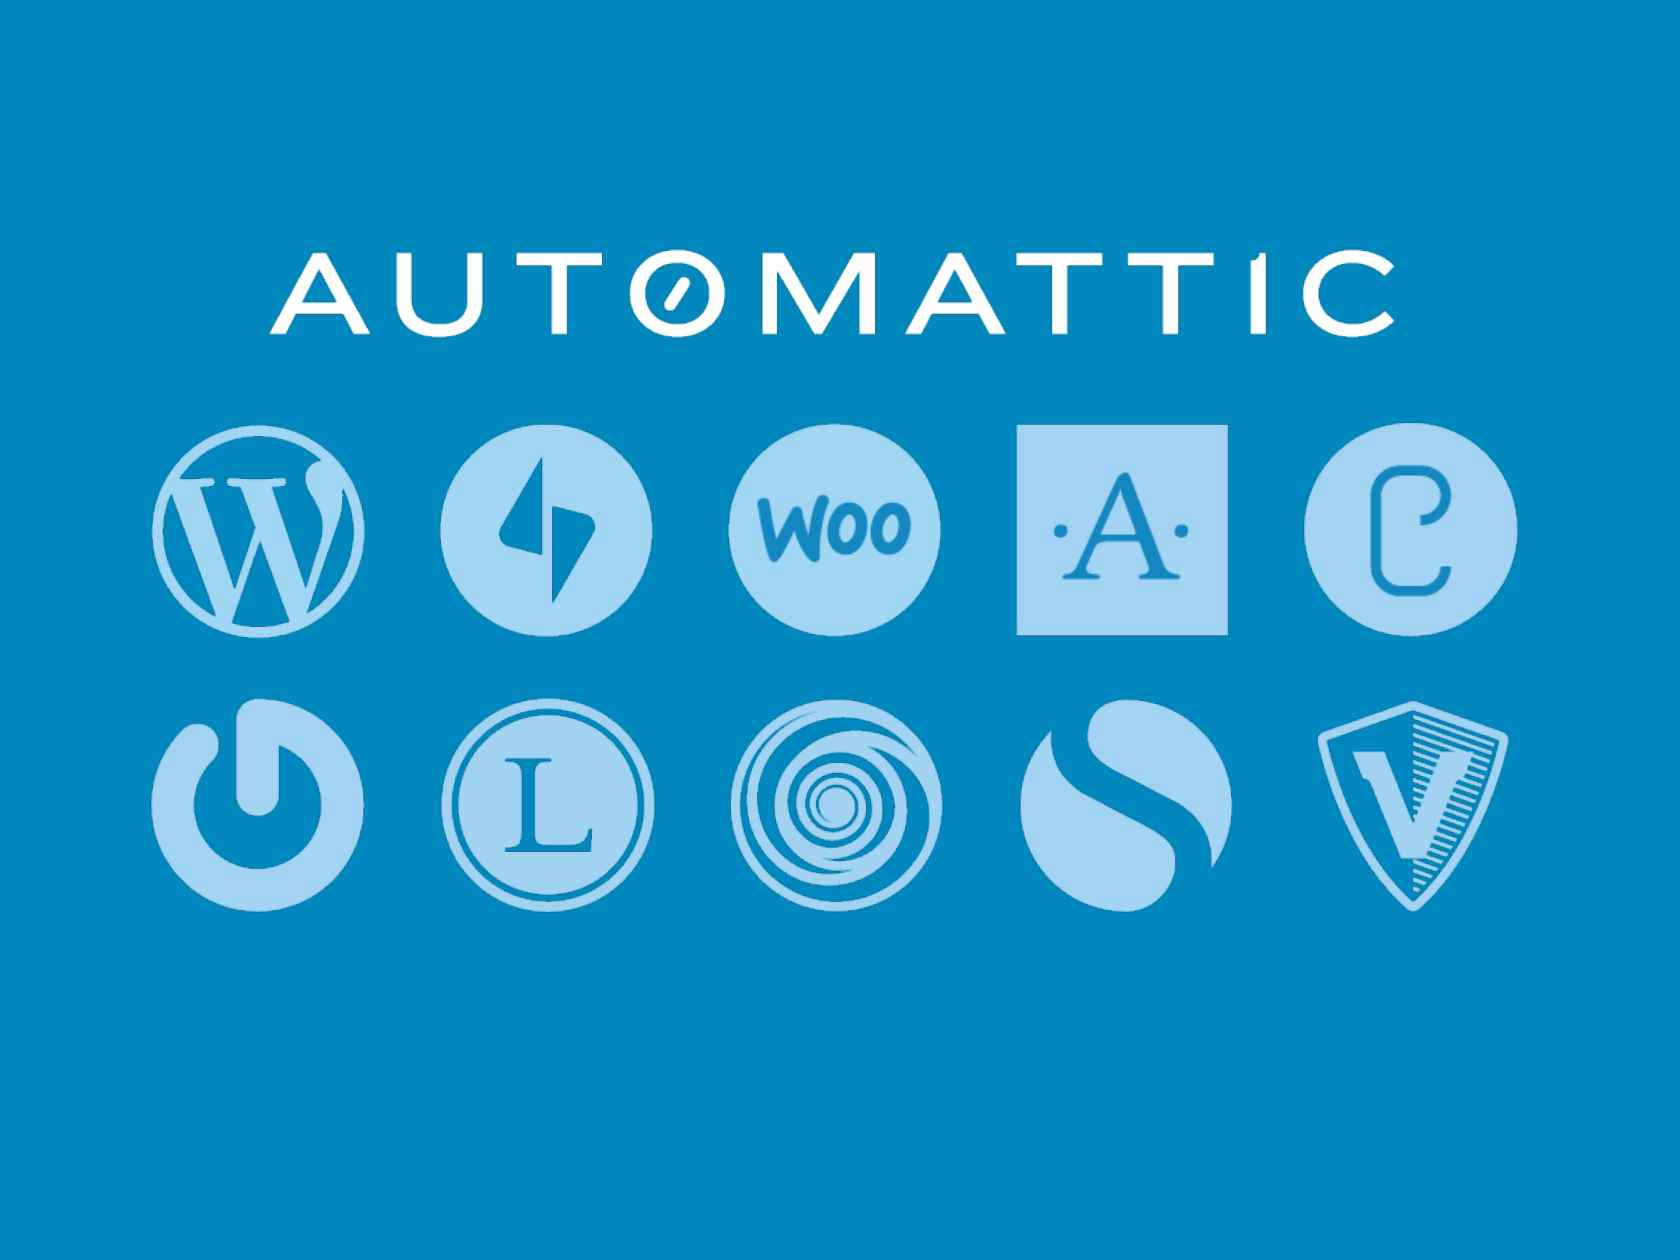 Blue image with words 'Automattic' and ten logos of the platforms they built.